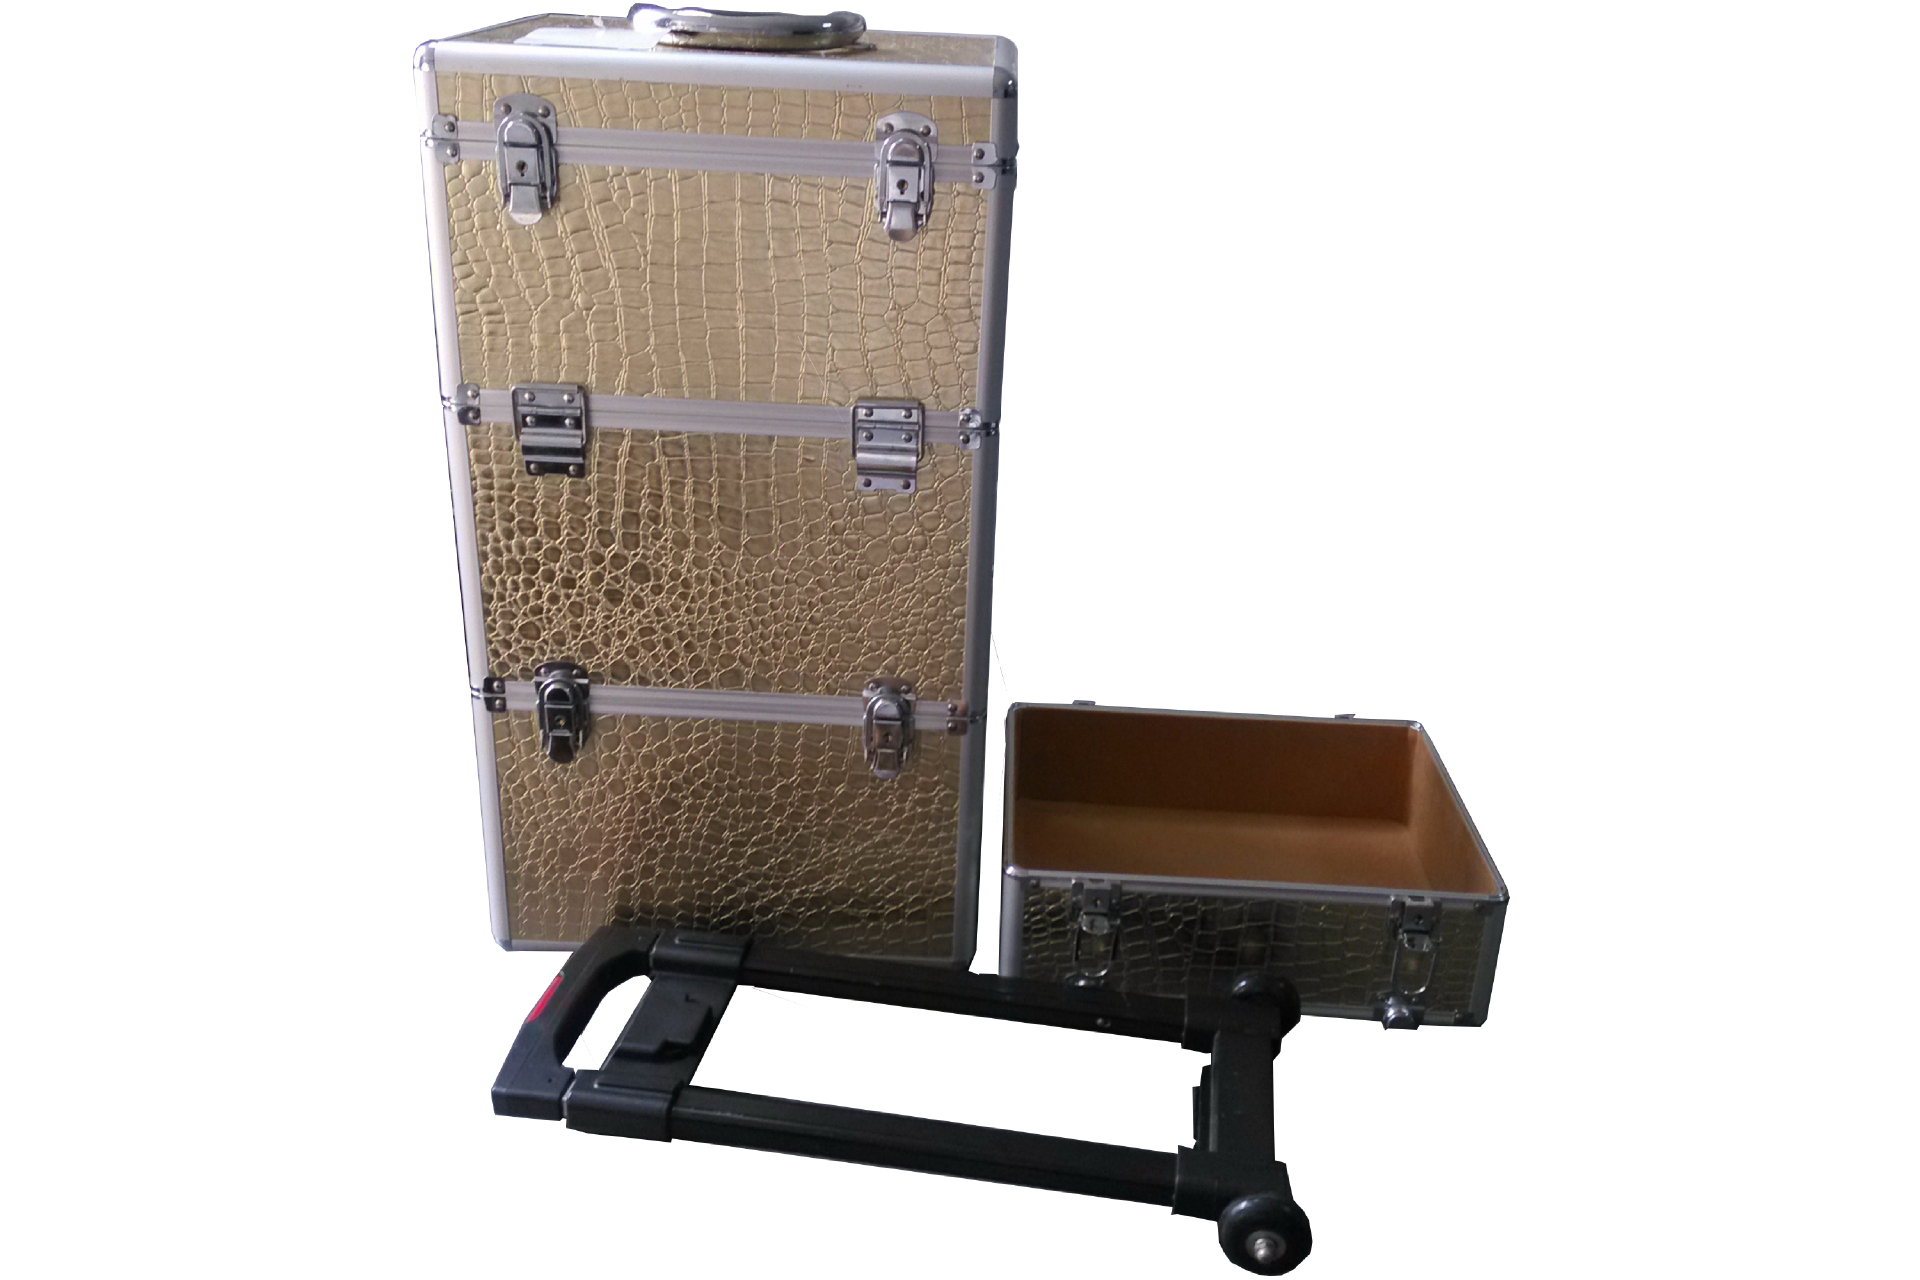 Detachable Trolley Hairdressing Cases- HD009